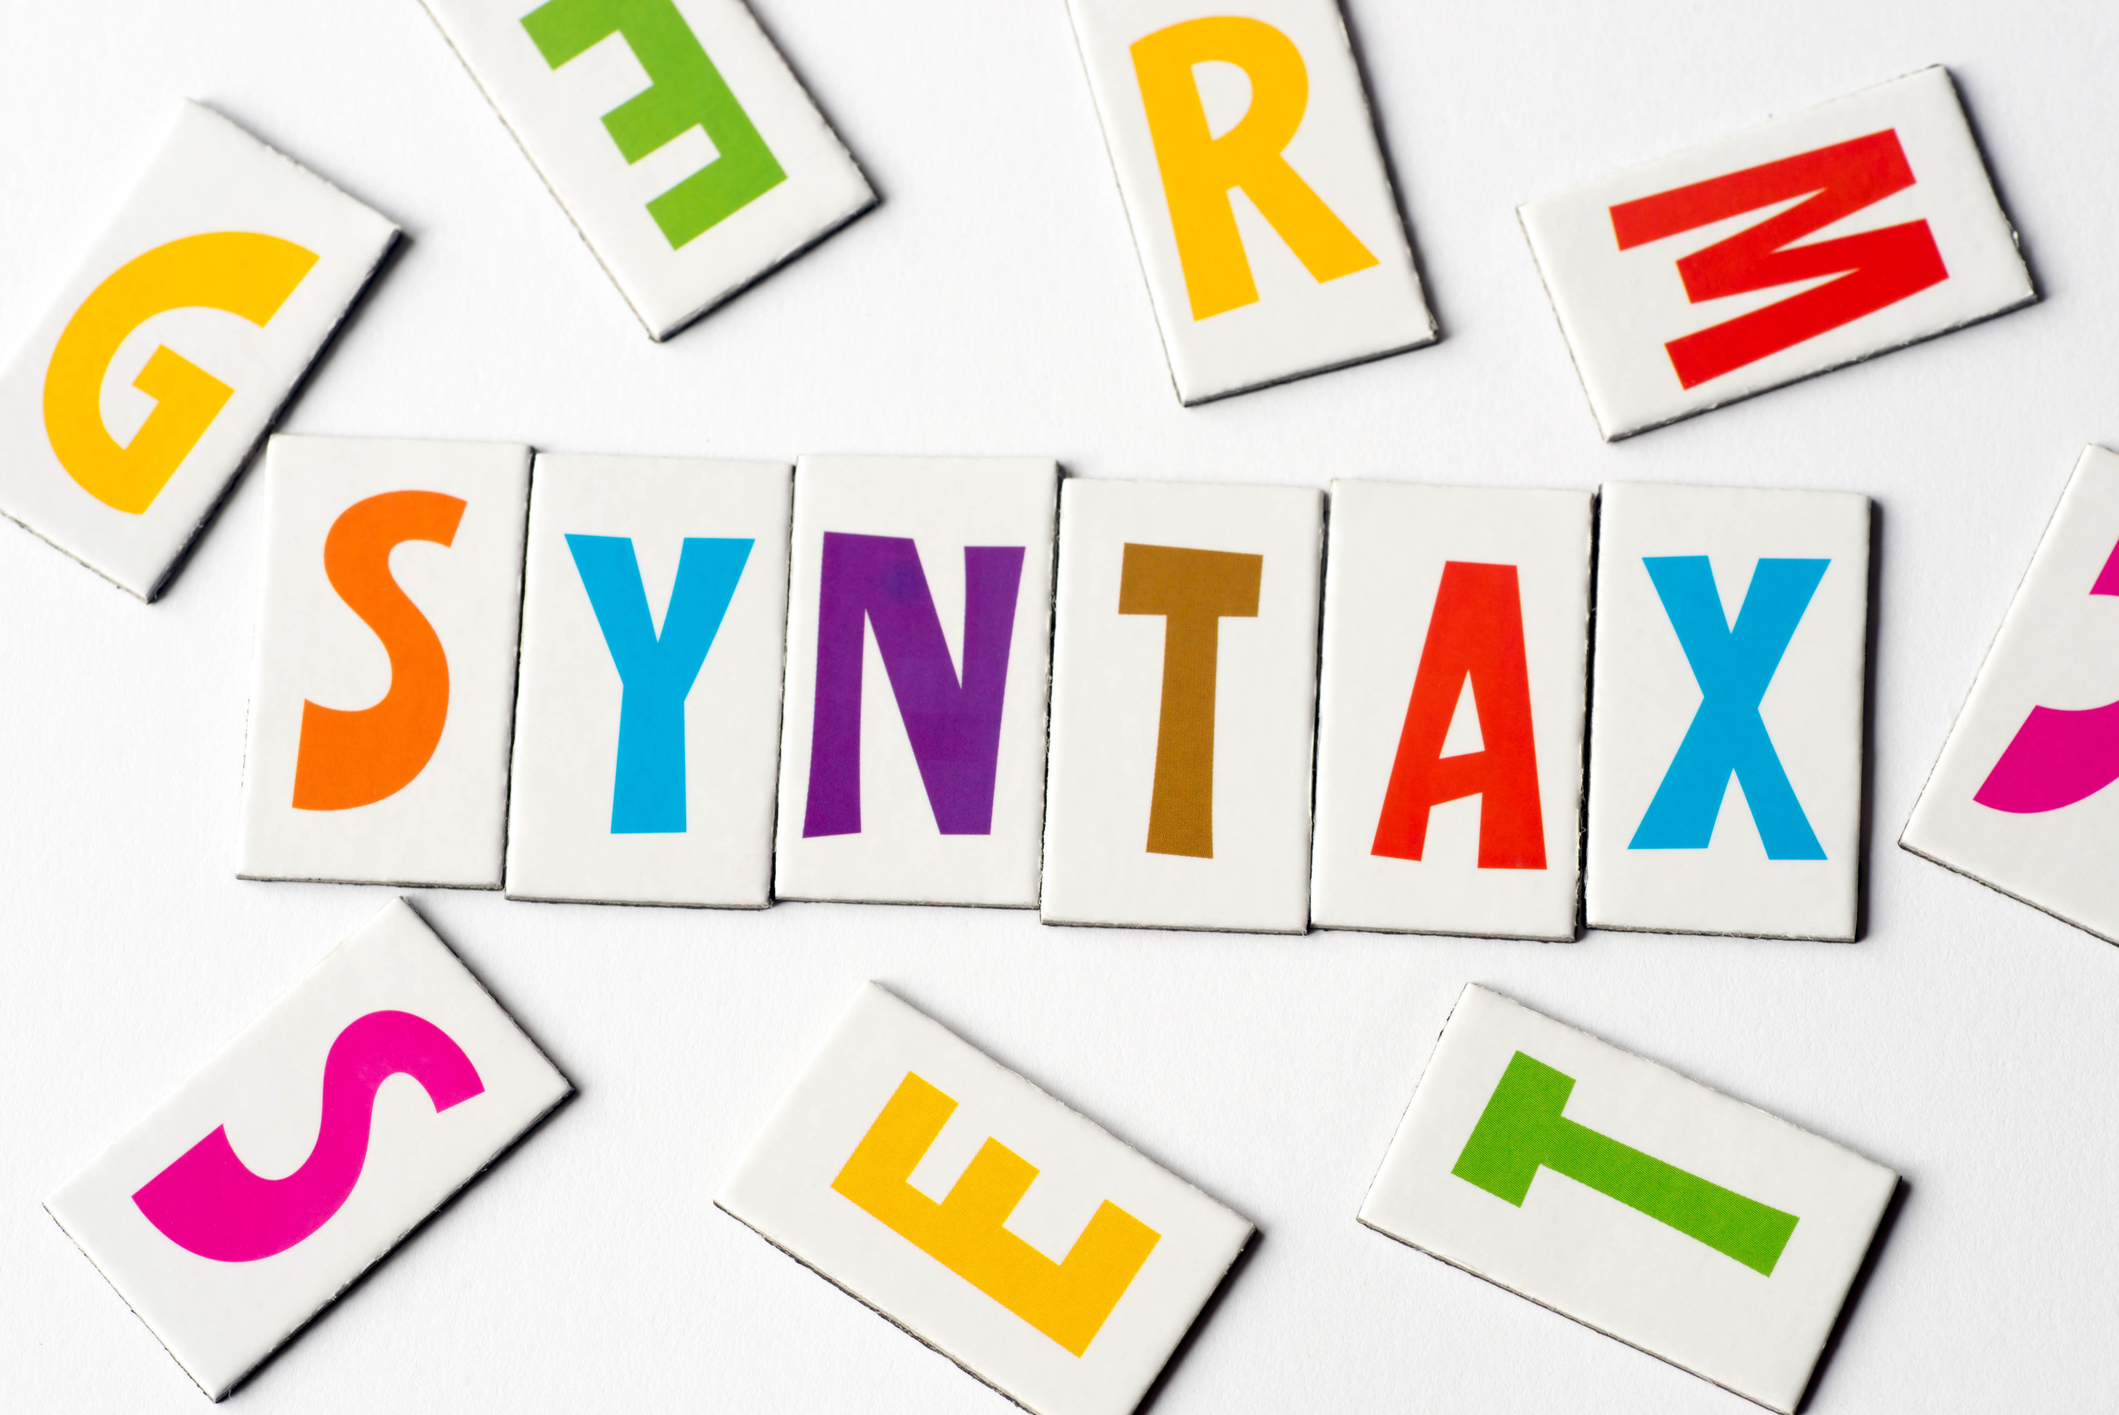 Missing Bits Results in Syntax Deficits